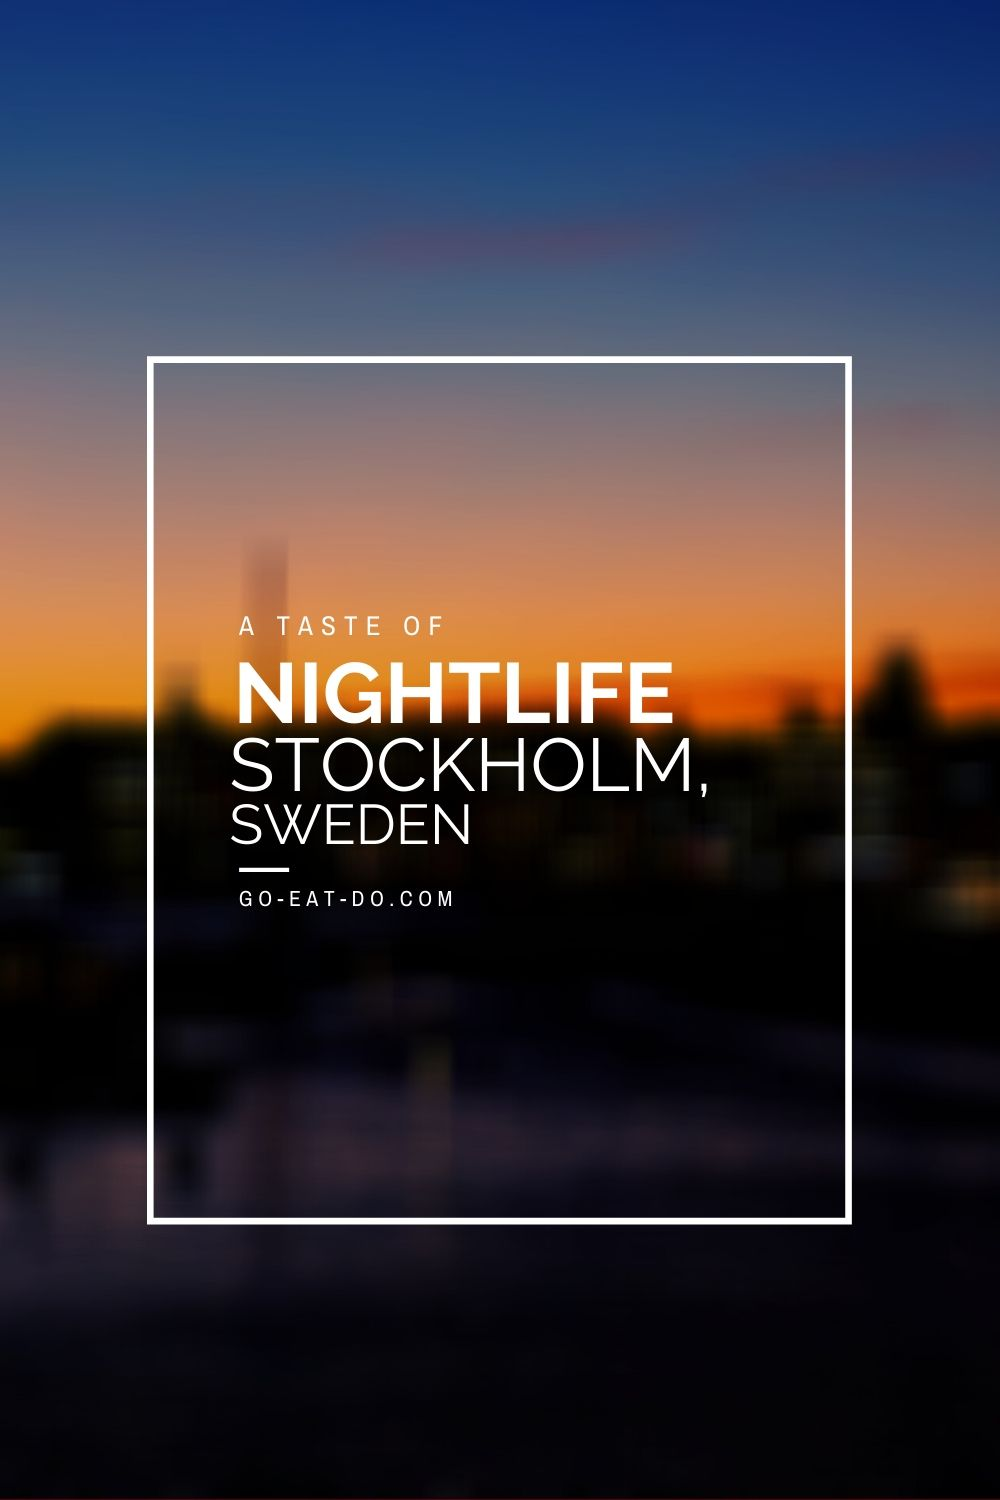 Pinterest pin for the Go Eat Do blog post about nightlife in Stockholm, Sweden